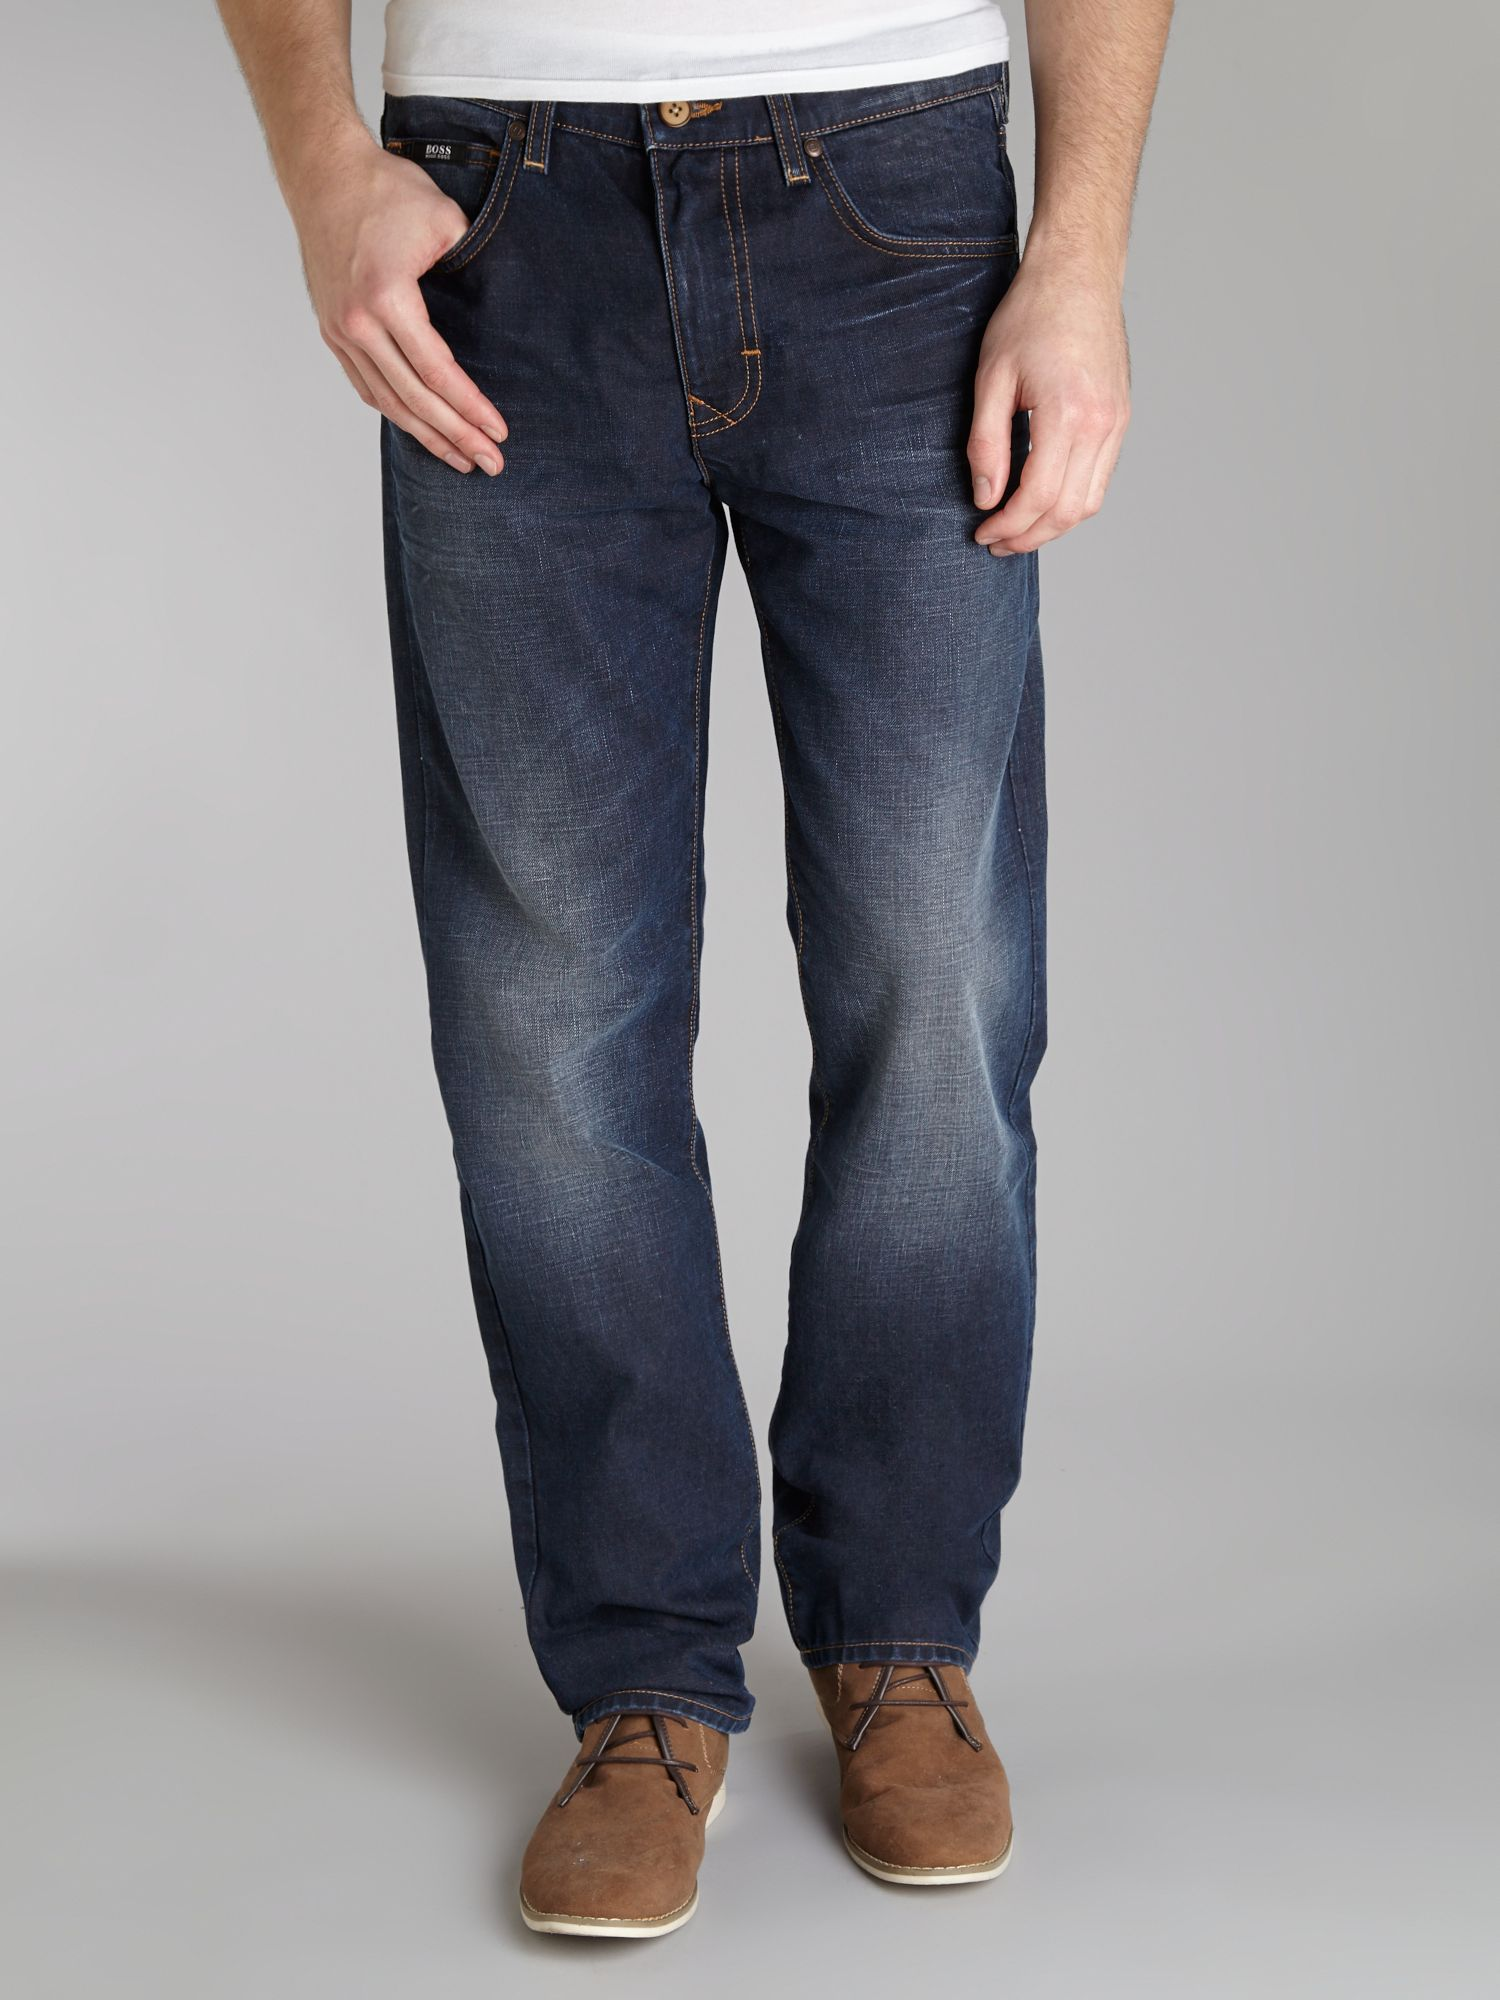 Kansas washed jean